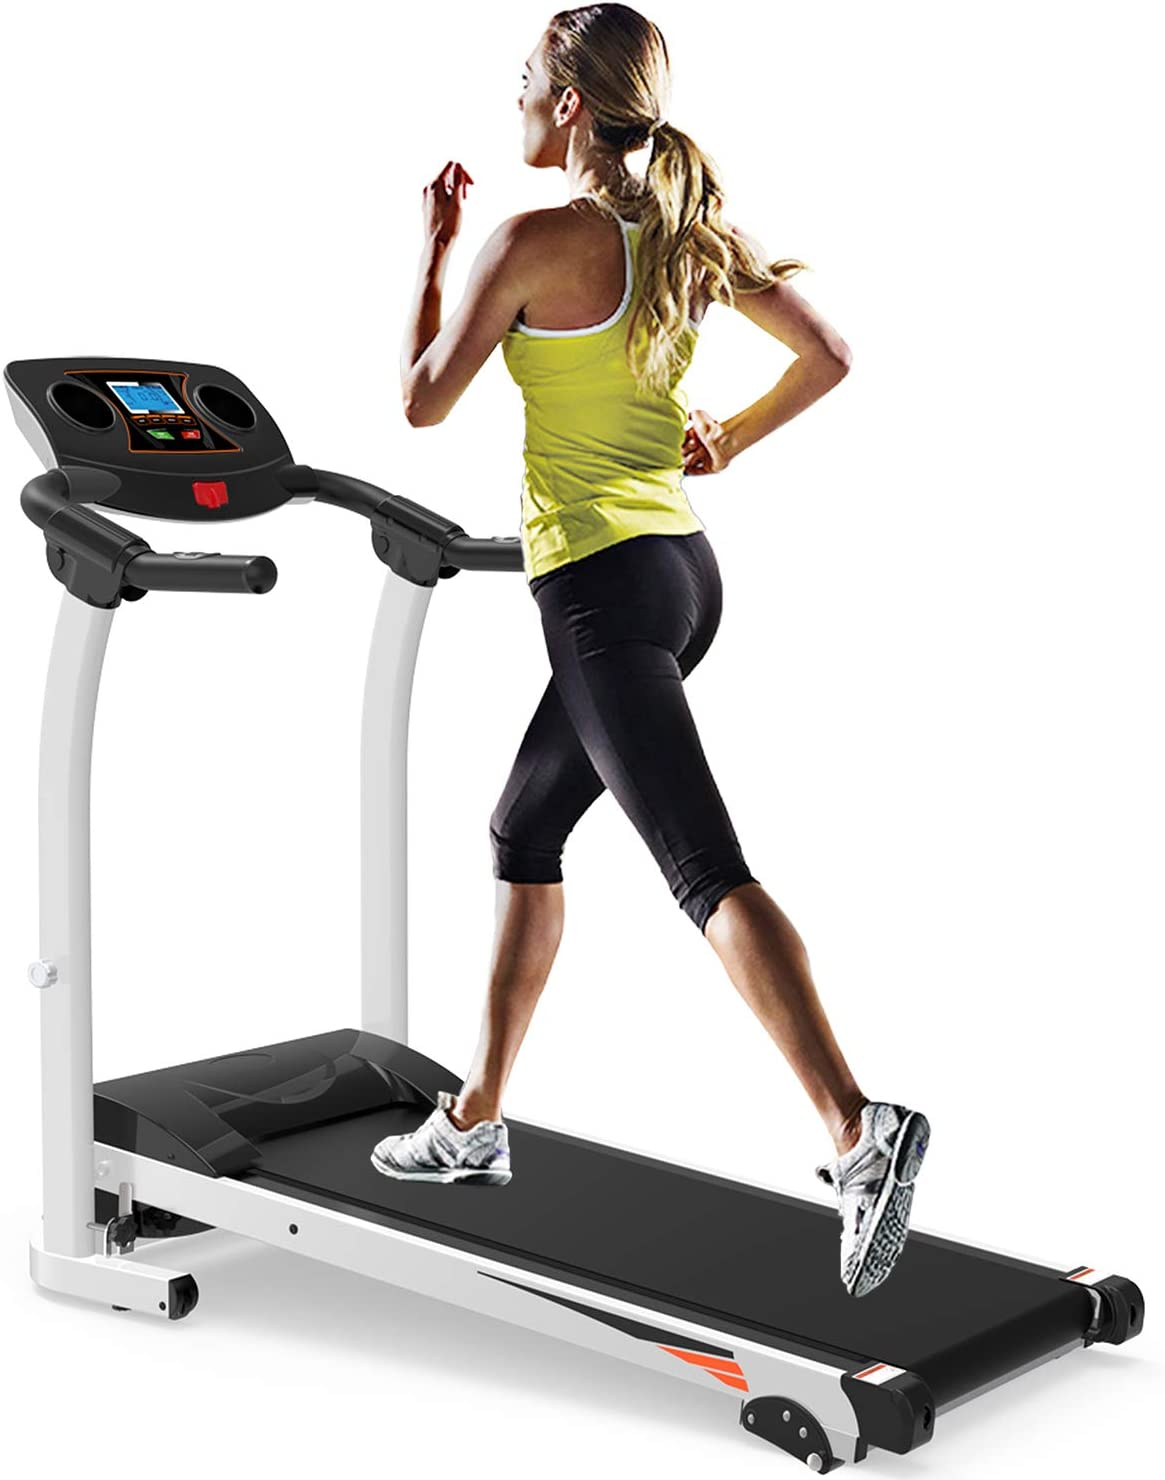 JULYFOX Home Folding Treadmill